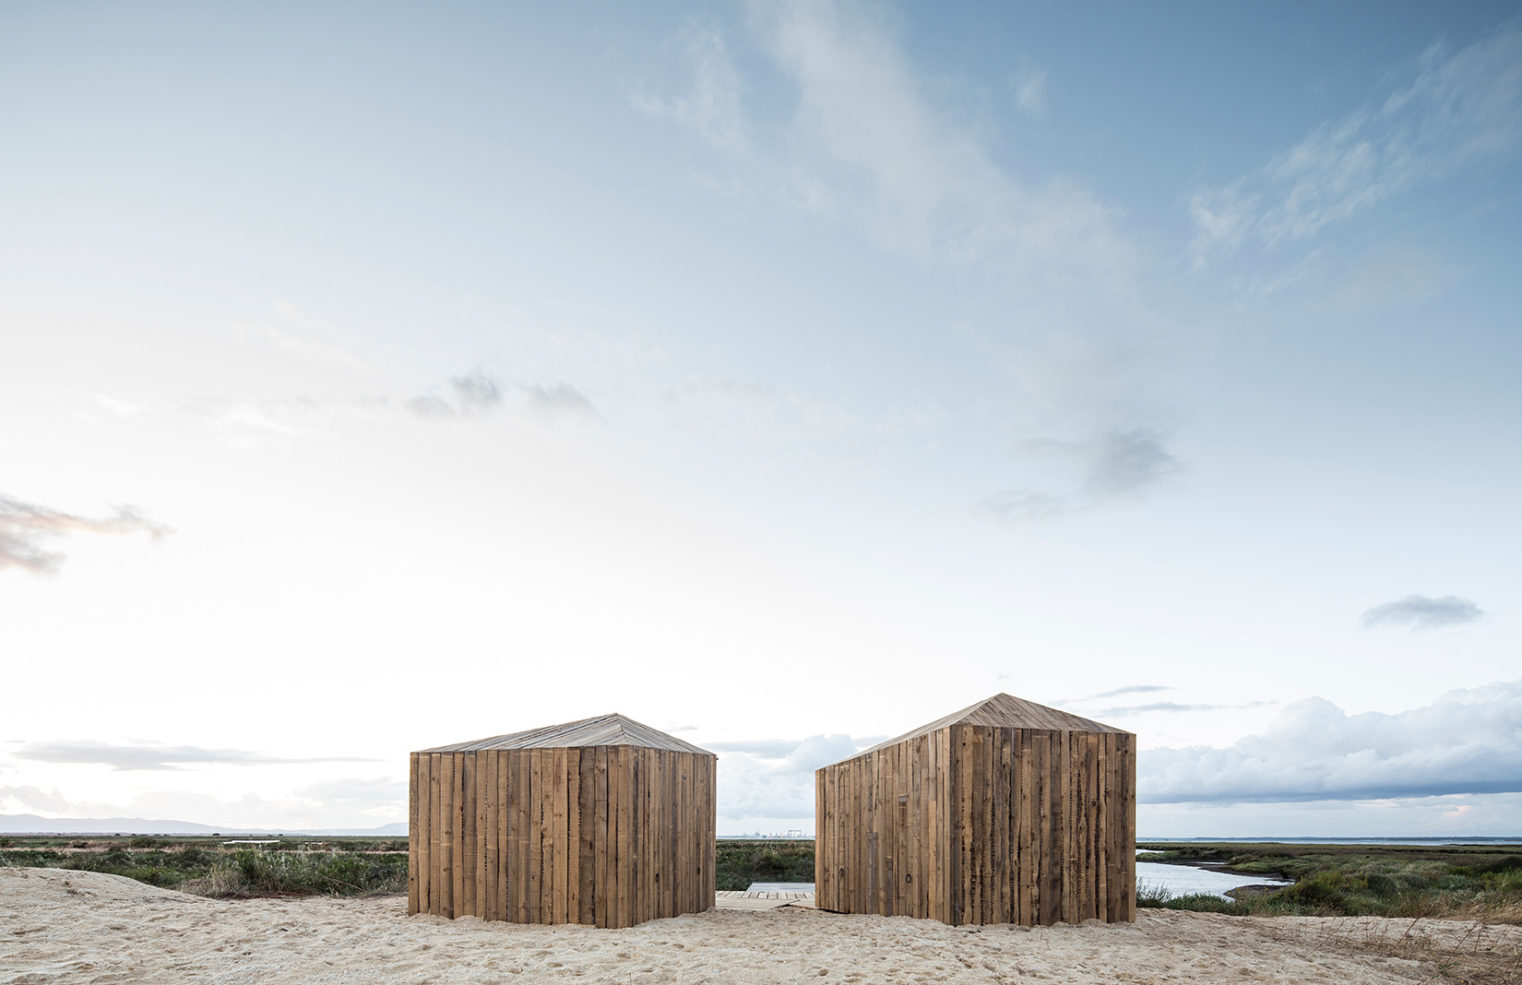 Cabanas no Rio in Comporta, Portugal